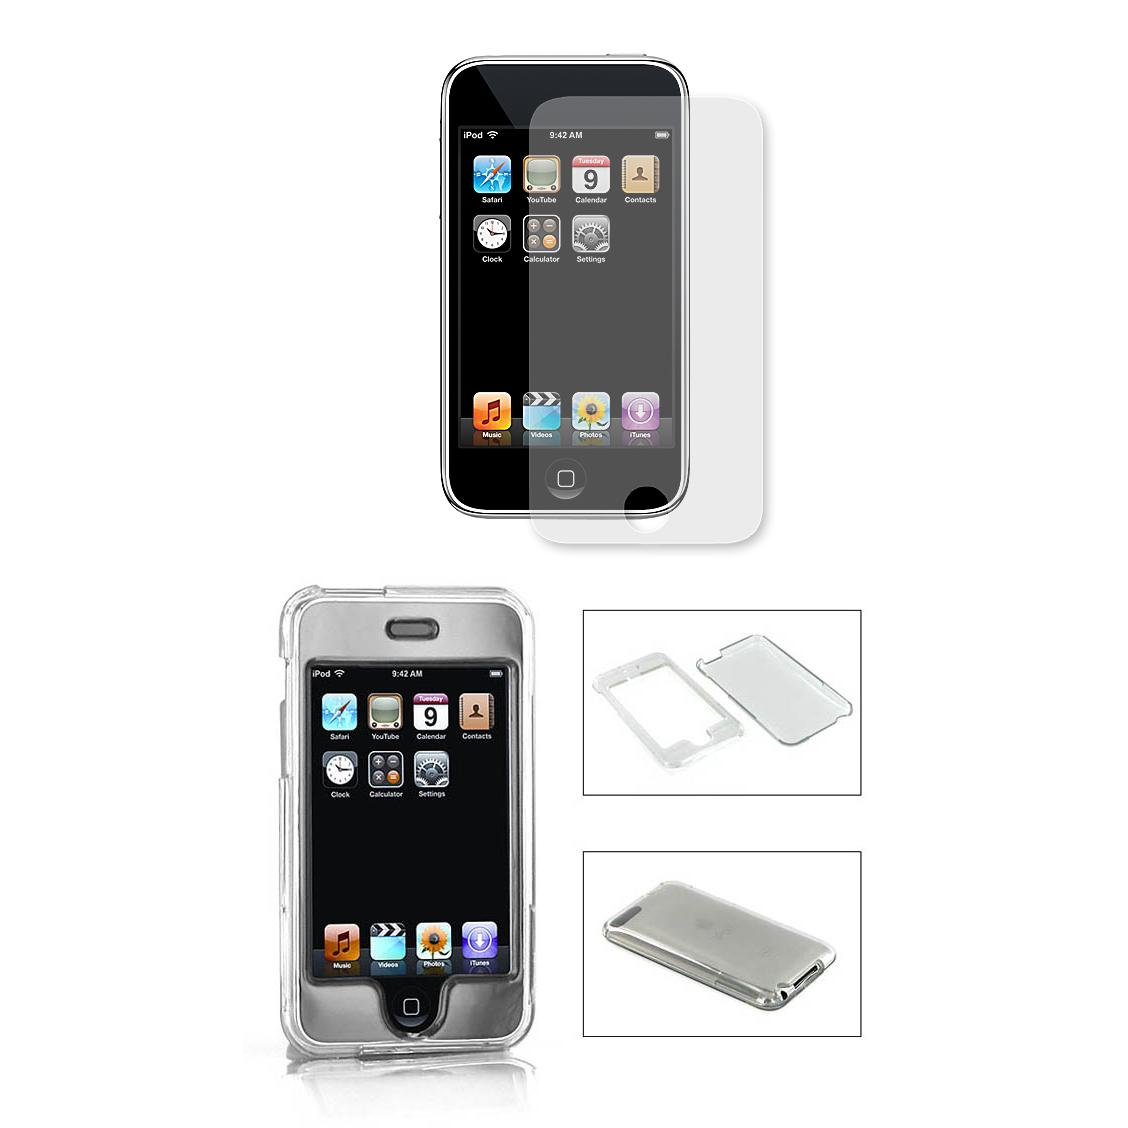 Apple iPod Touch 3rd Generation Protector Case with Screen Protector